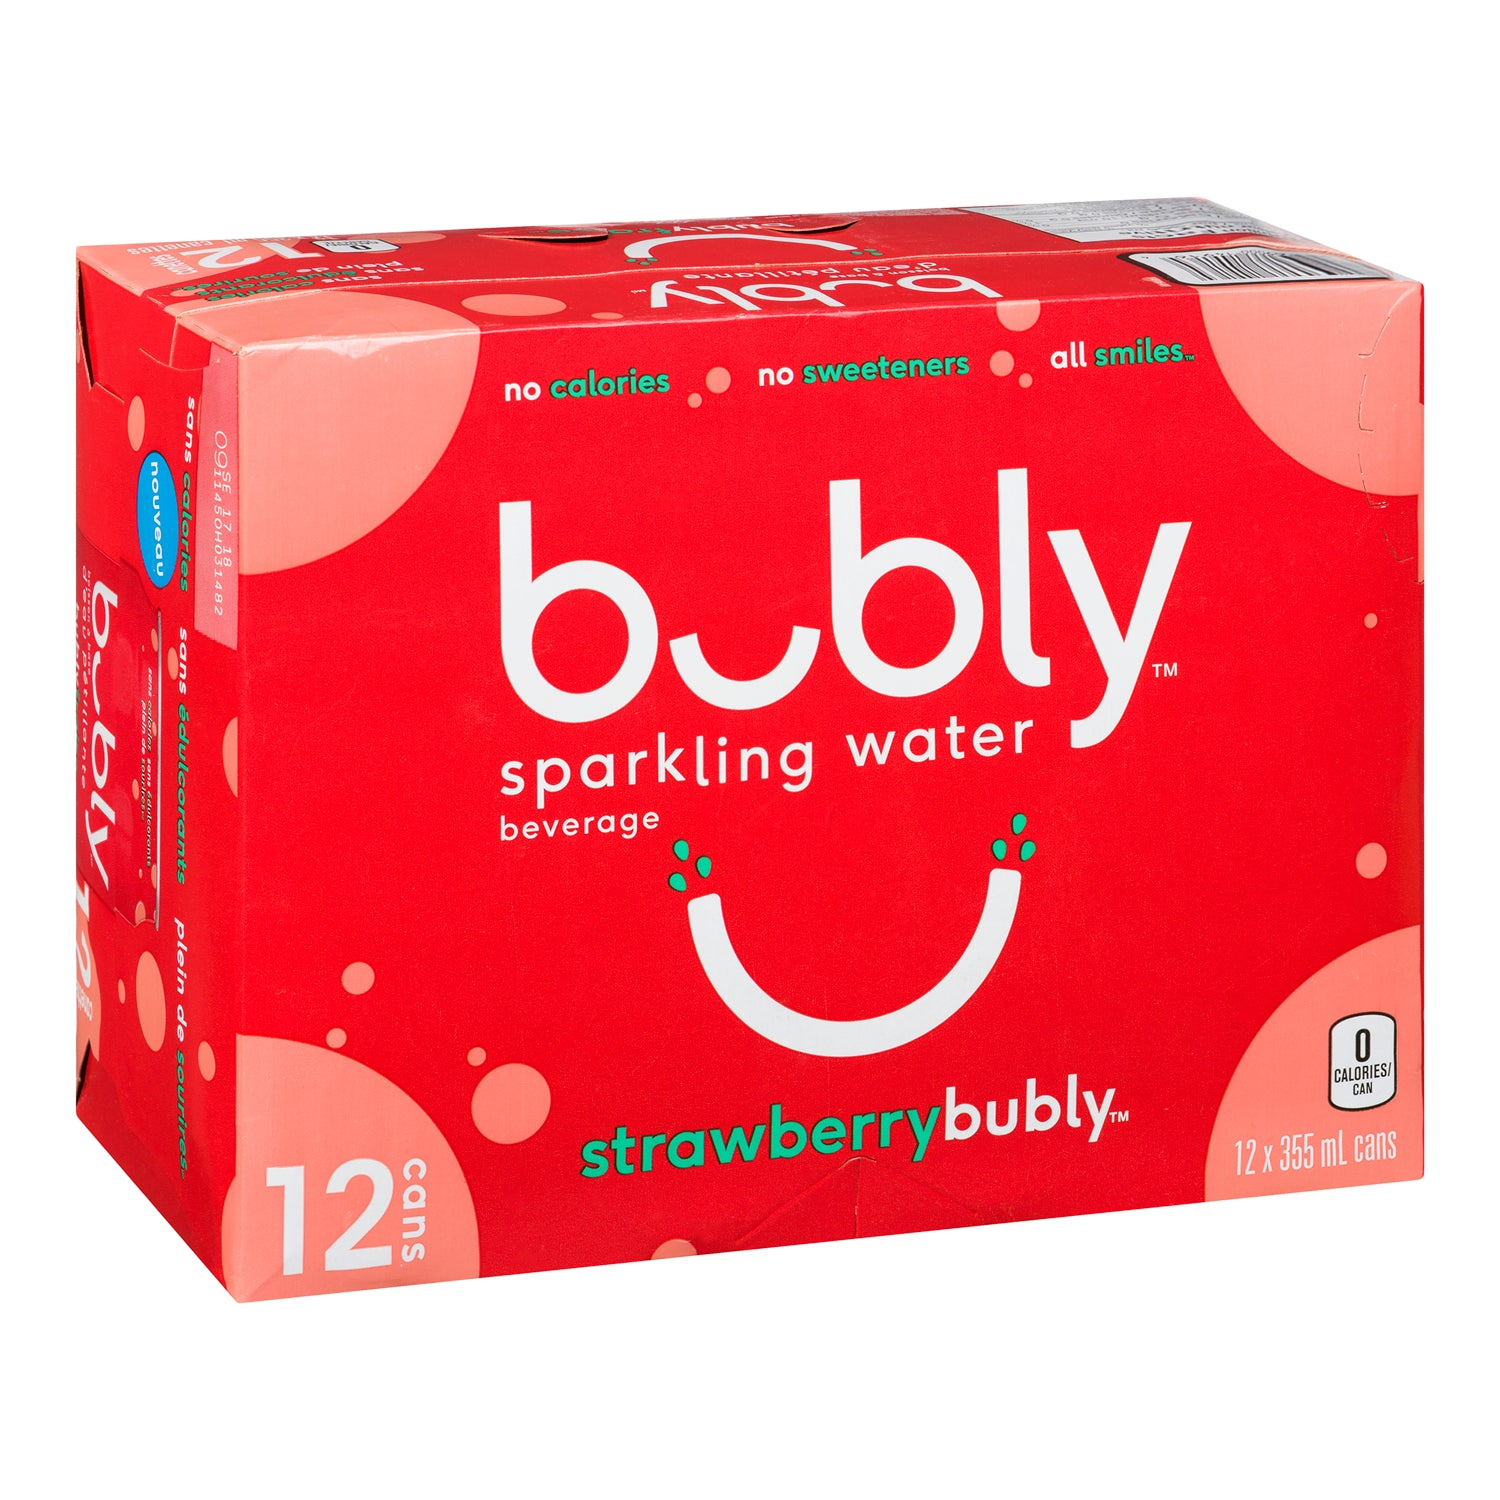 Bubly Strawberry Sparkling Water 355 ml - 12 Pack [$0.44/each]